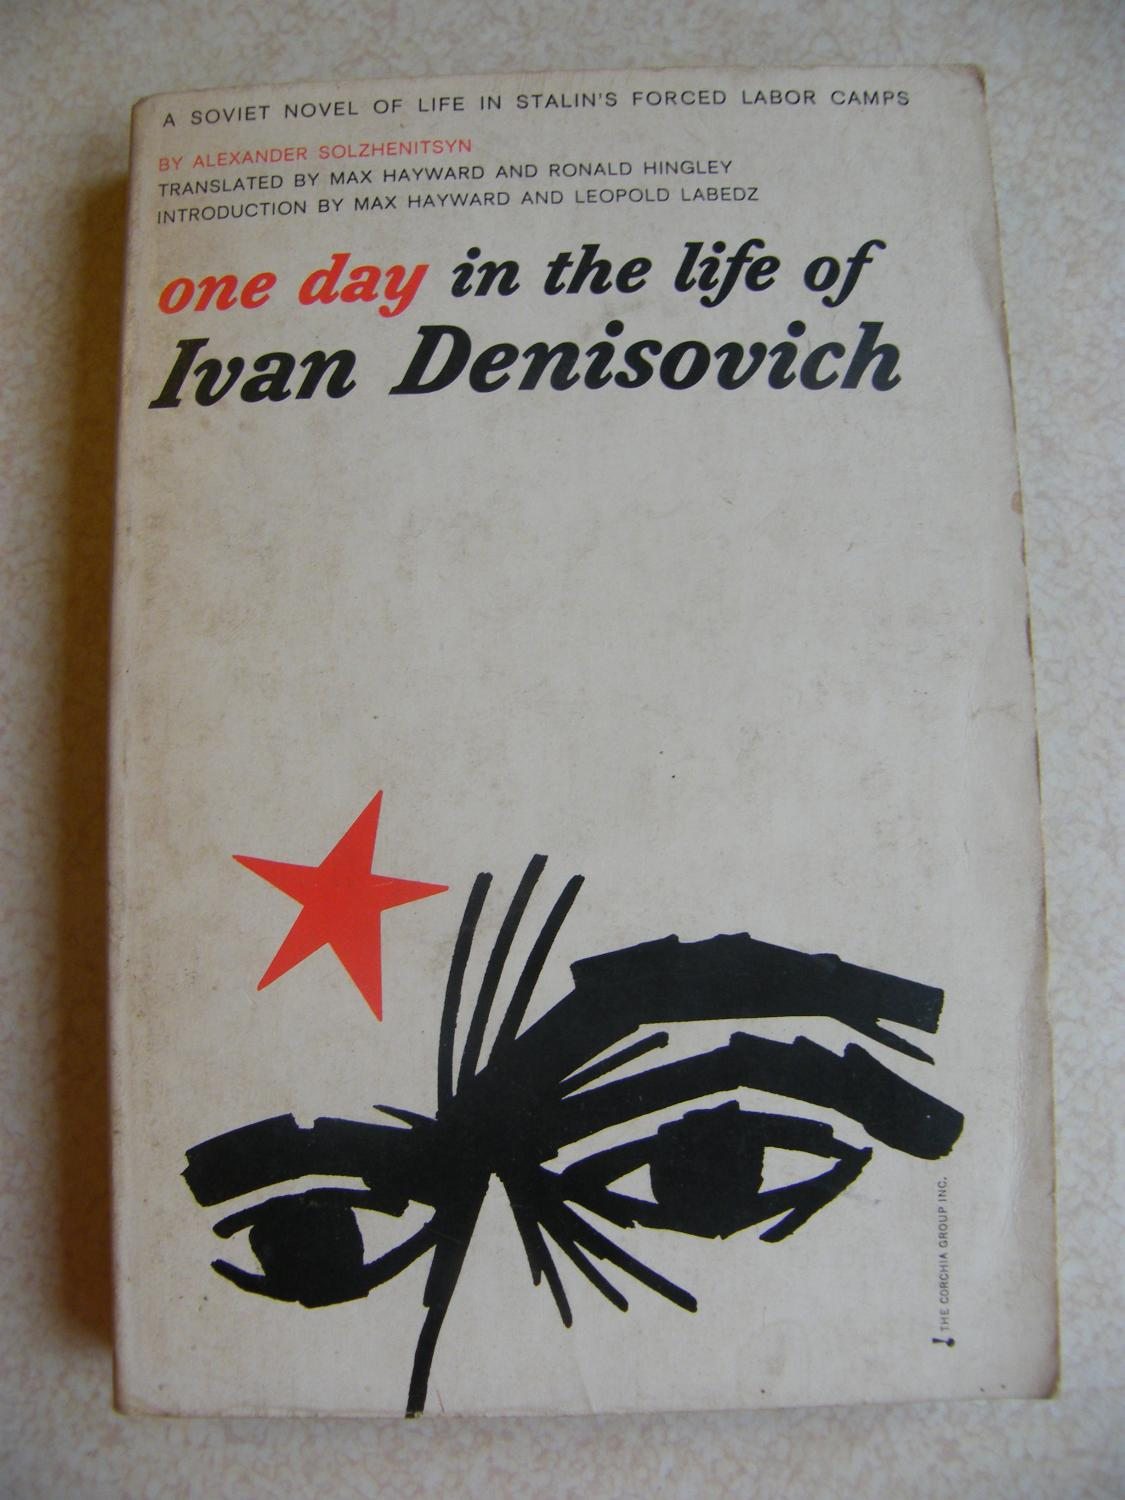 thesis statement for one day in the life of ivan denisovich